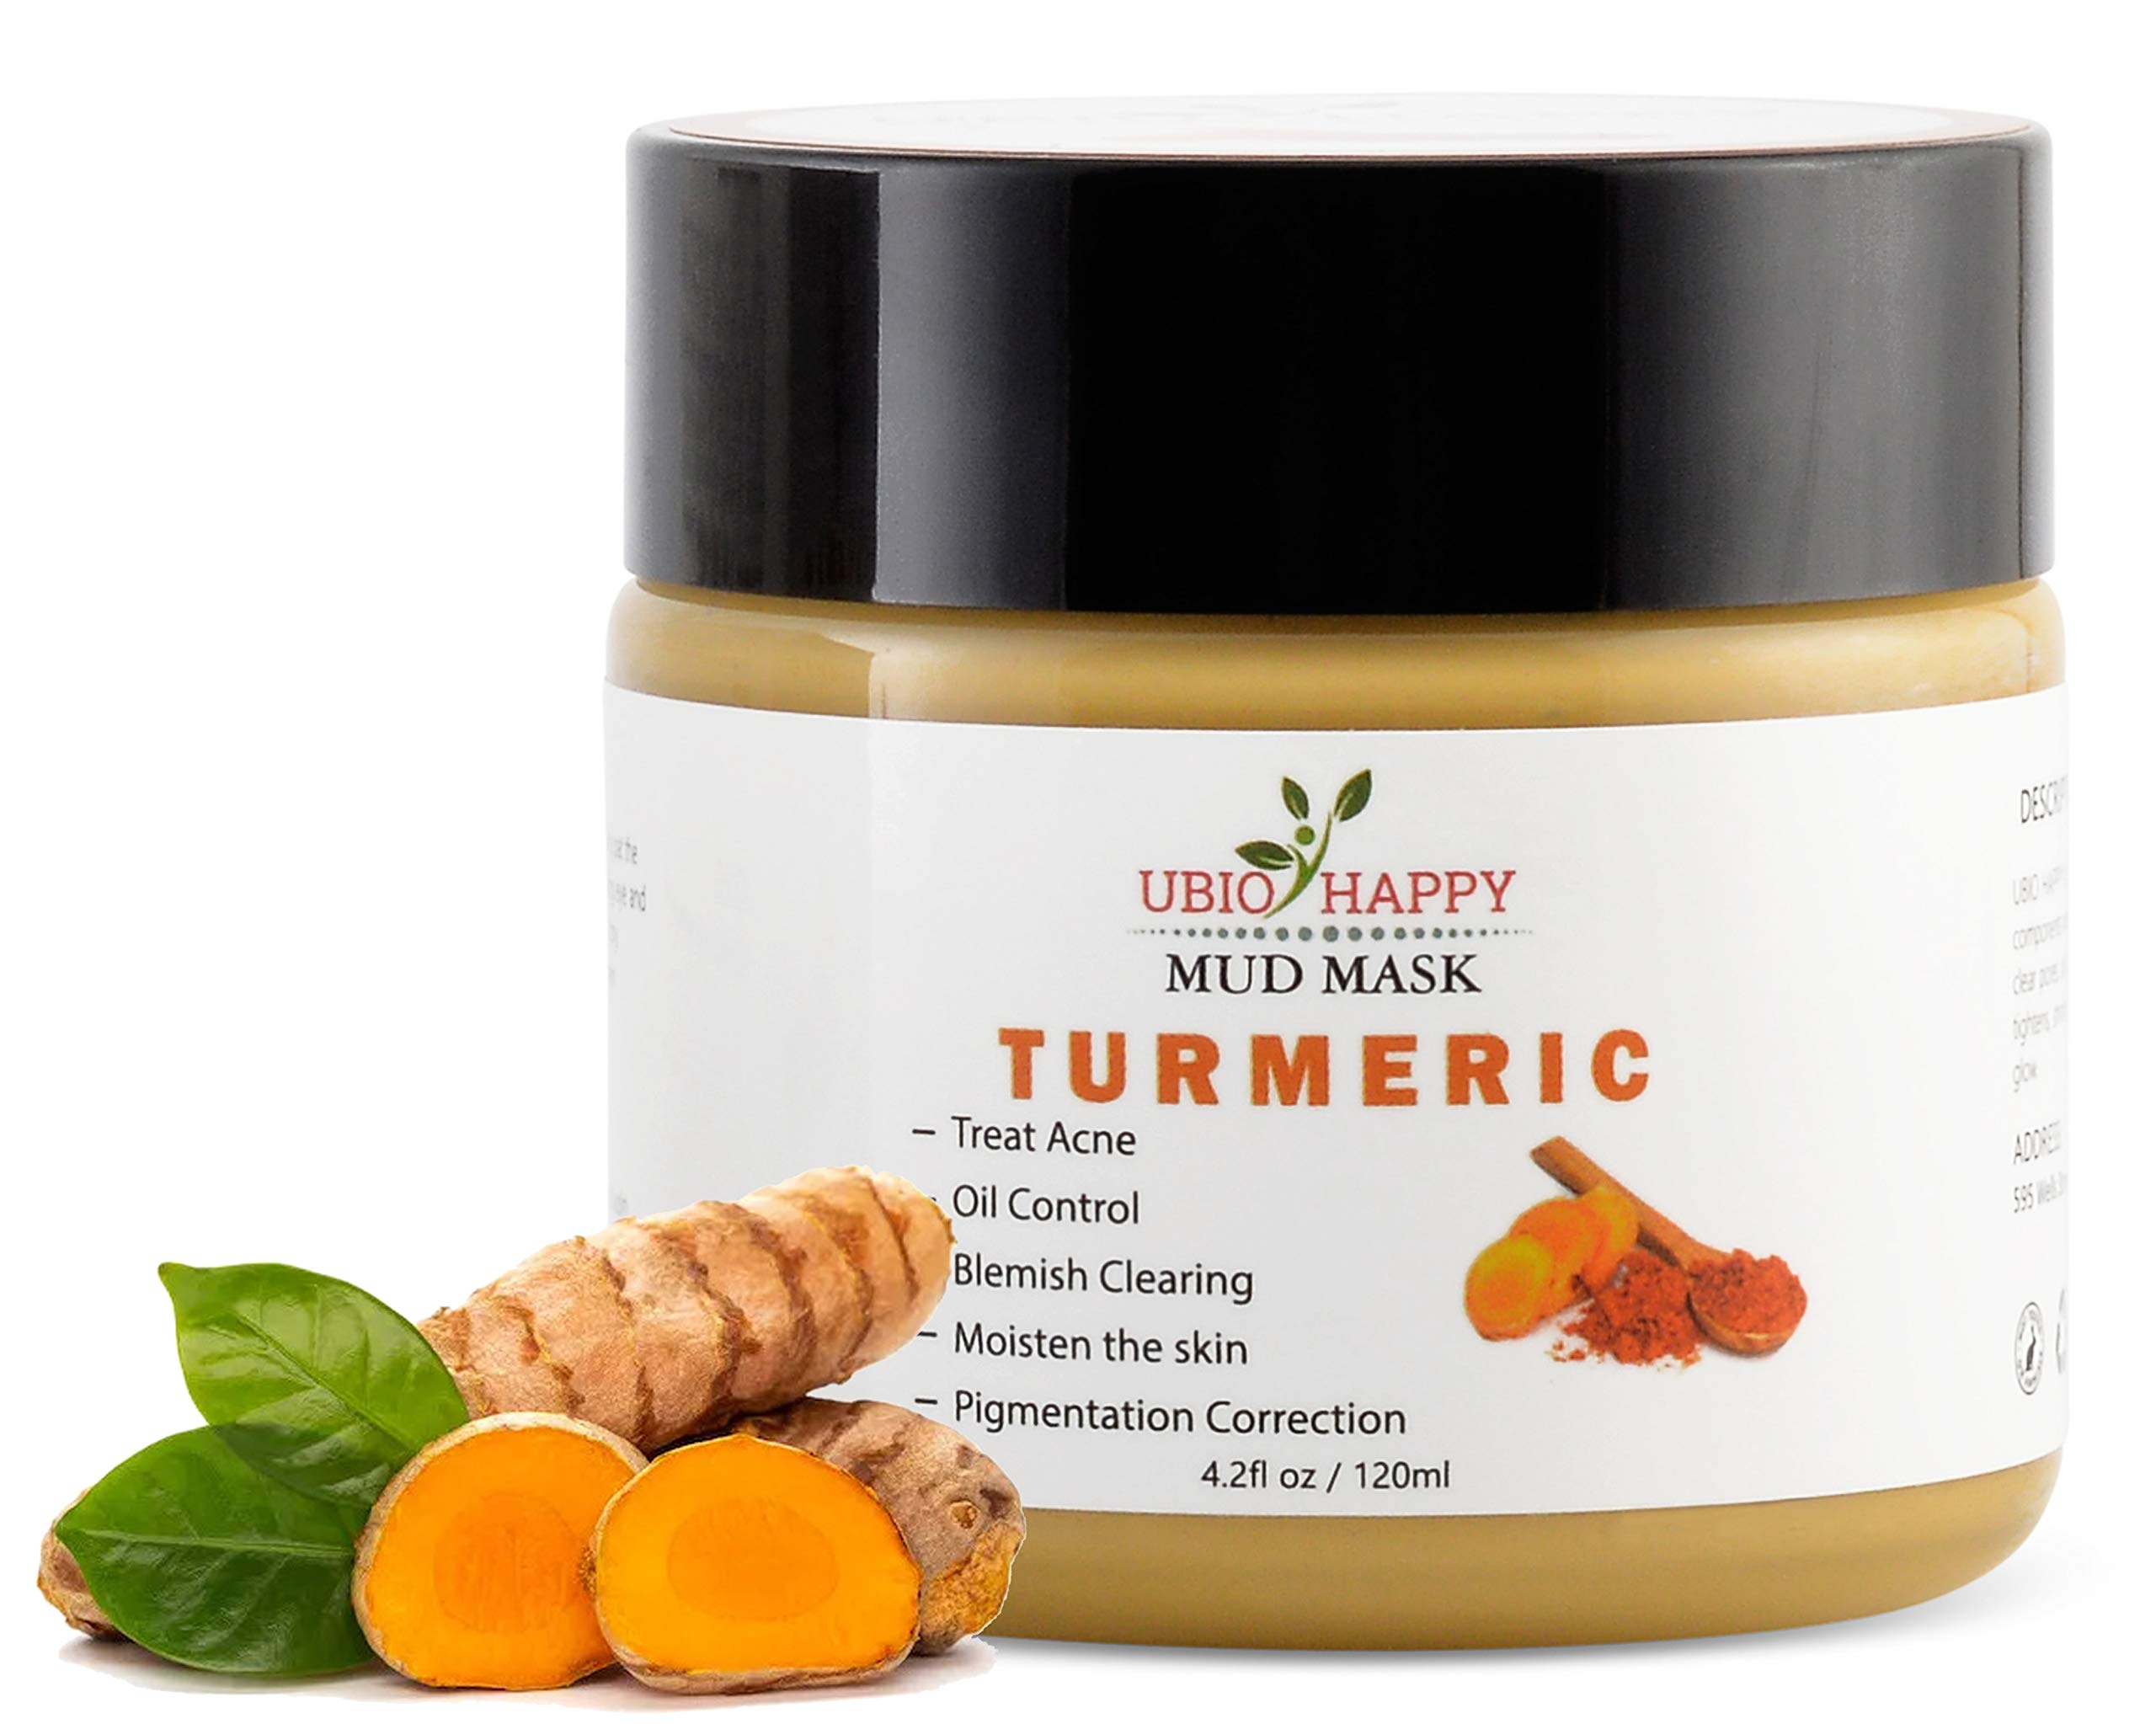 Organic Turmeric Face Mask | Bentonite Clay Mud Peel Mask for Acne Treatment and Hydrated Skin | Fortified with Healing Jojoba Oil, Aloe Vera and More | Natural Spot & Blemish Remover Facial Cleanser